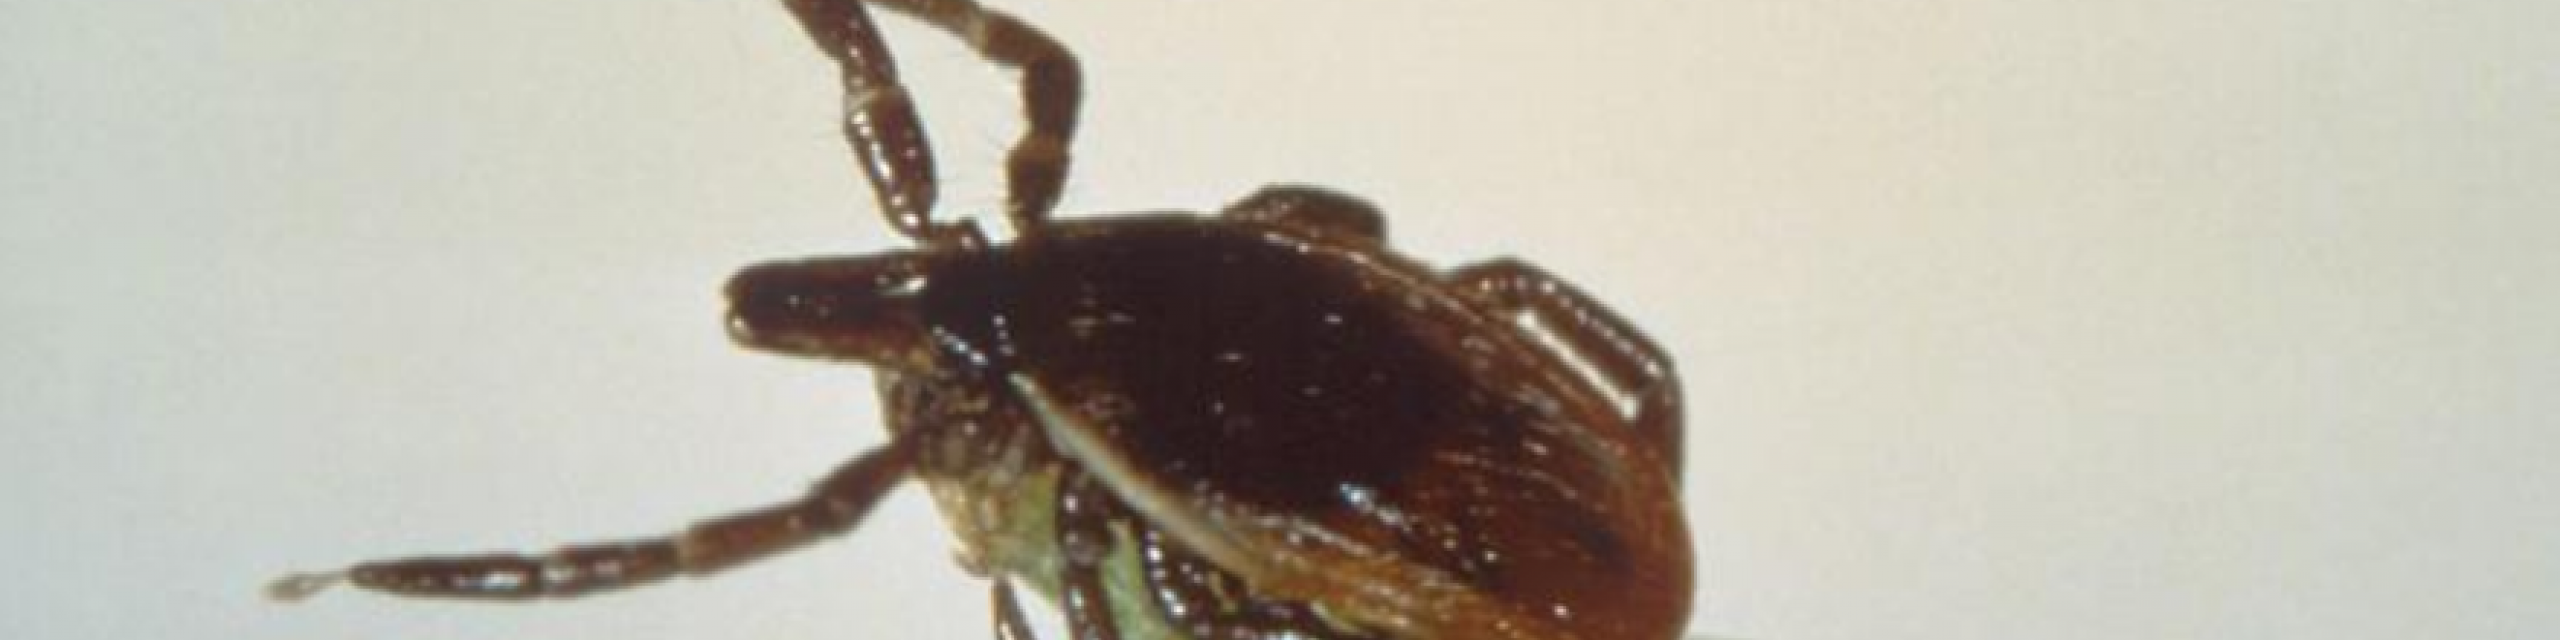 Example Image of Ticks - Humboldt Termite & Pest